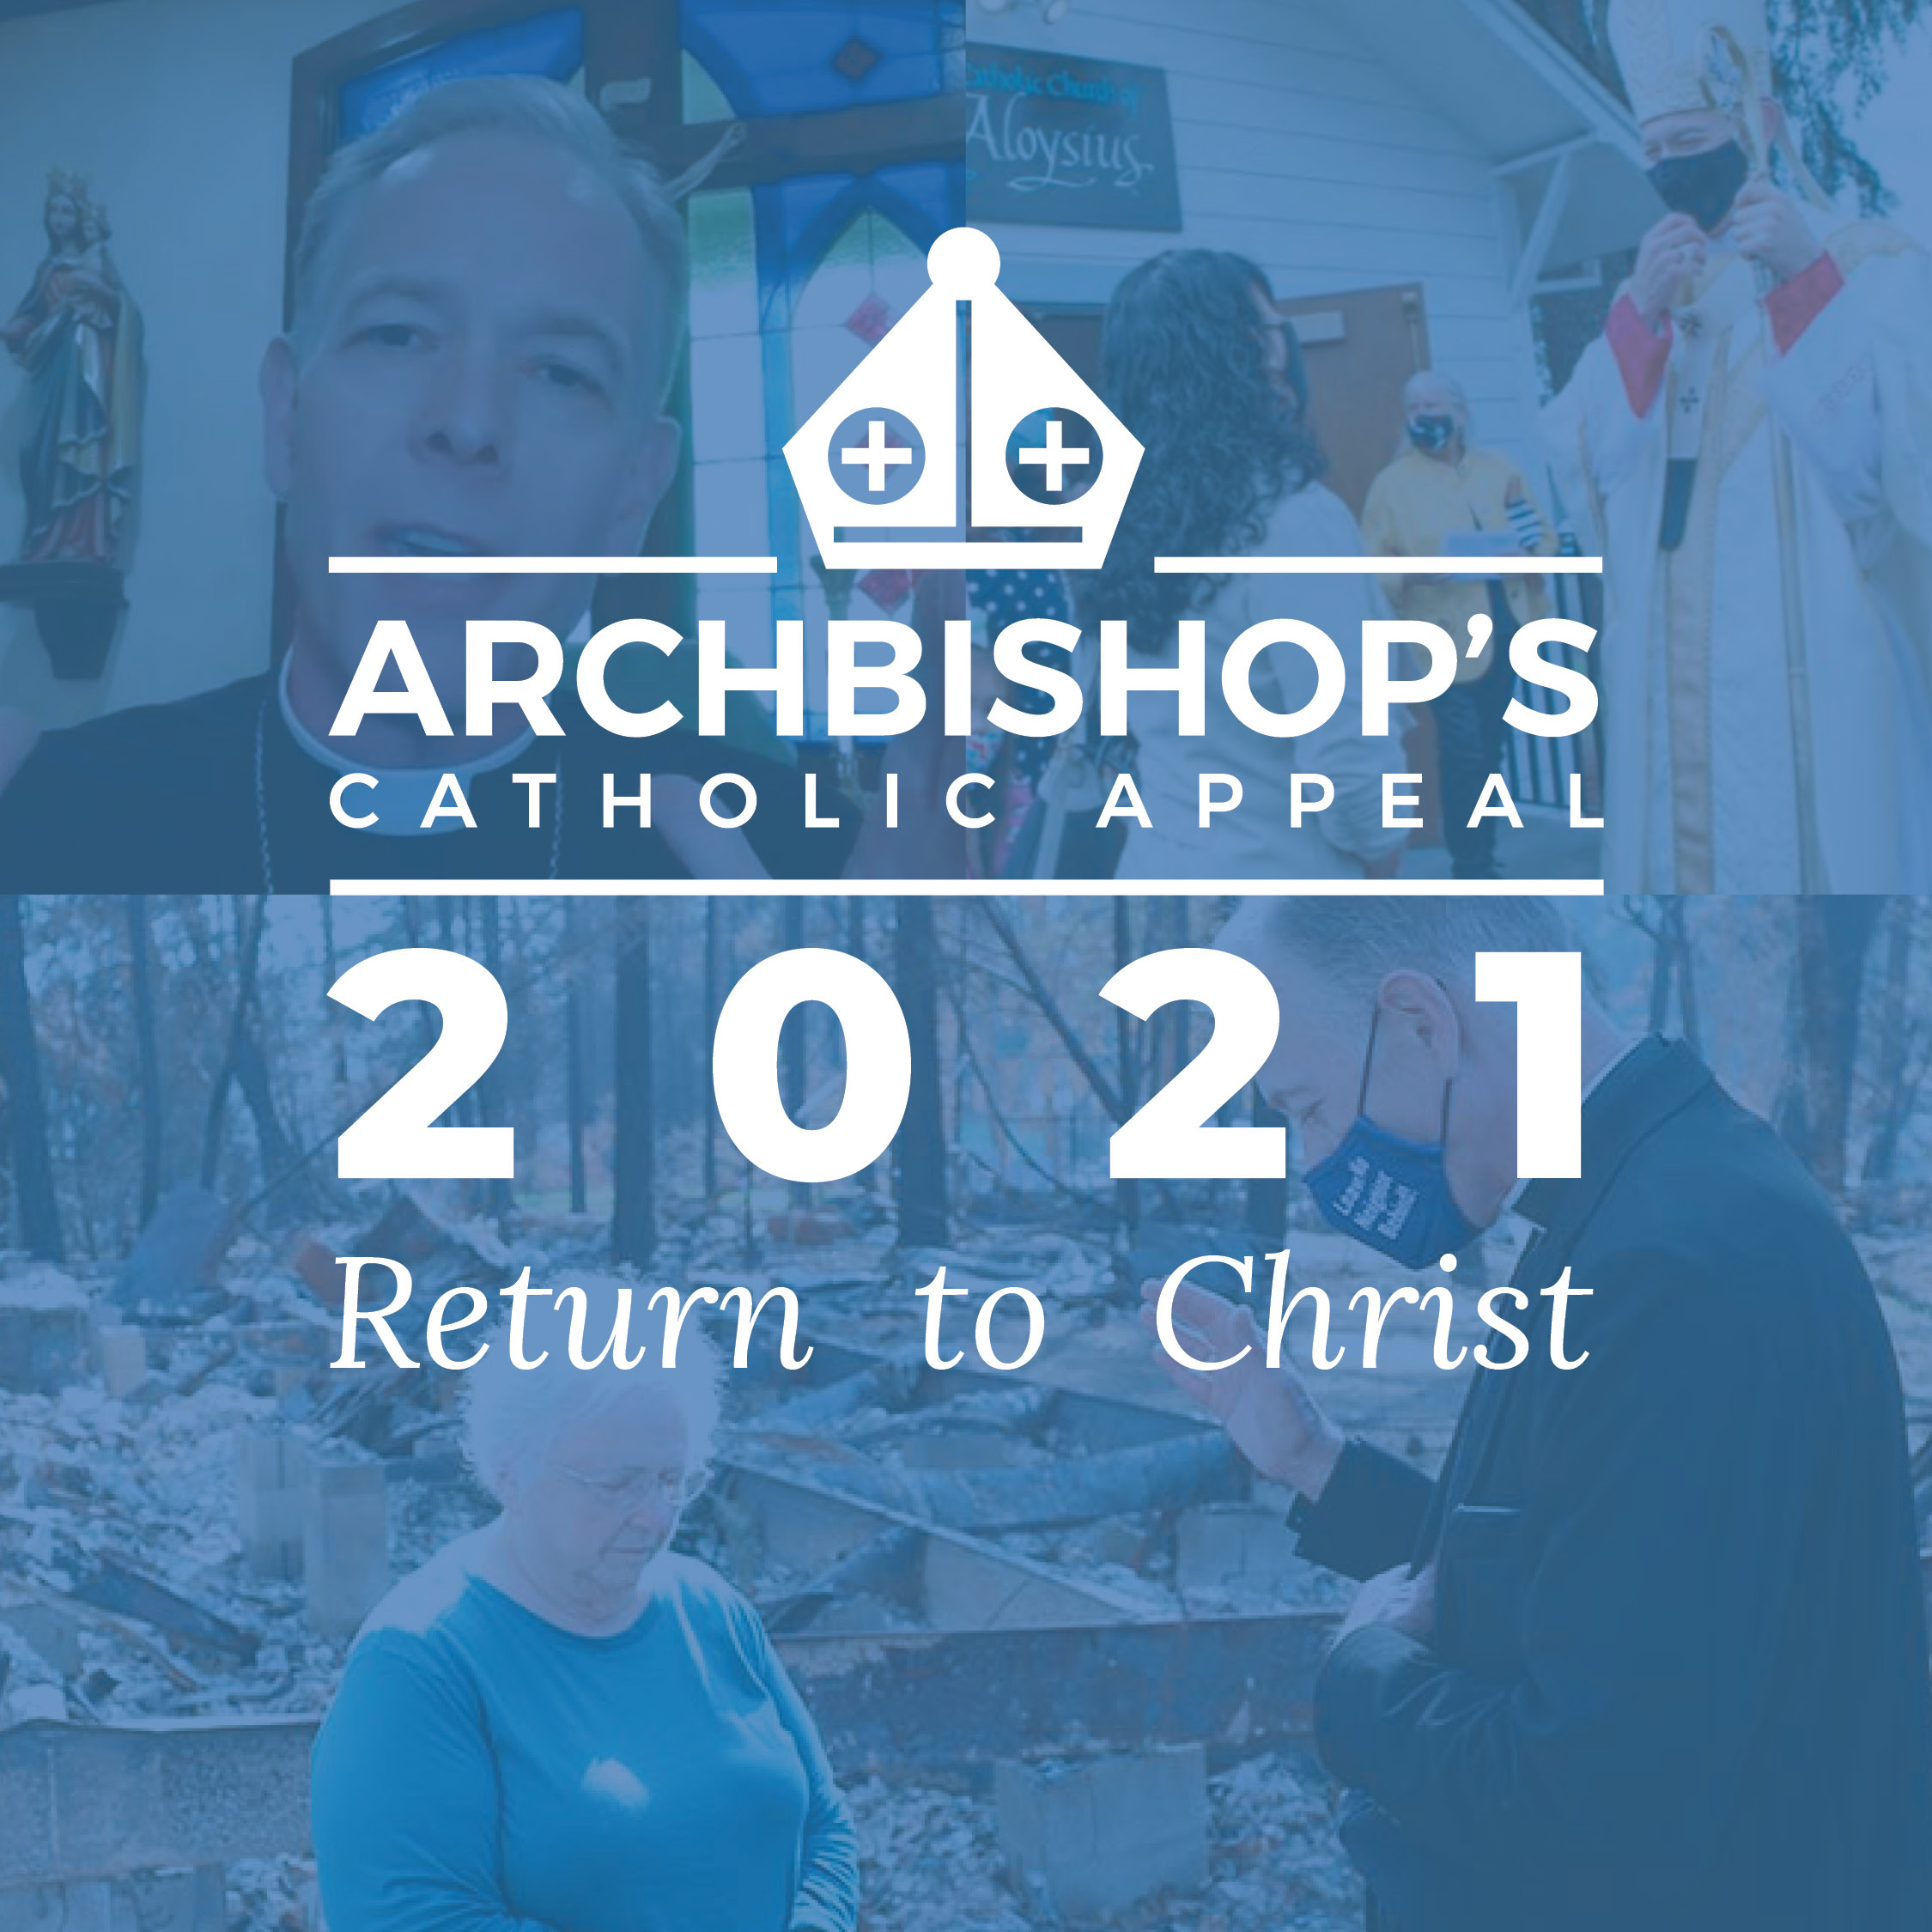 The Archbishop's Catholic Appeal (ACA)supports the Archdiocese's ministries in western Oregon - including pastoral ministries and care for the priesthood.